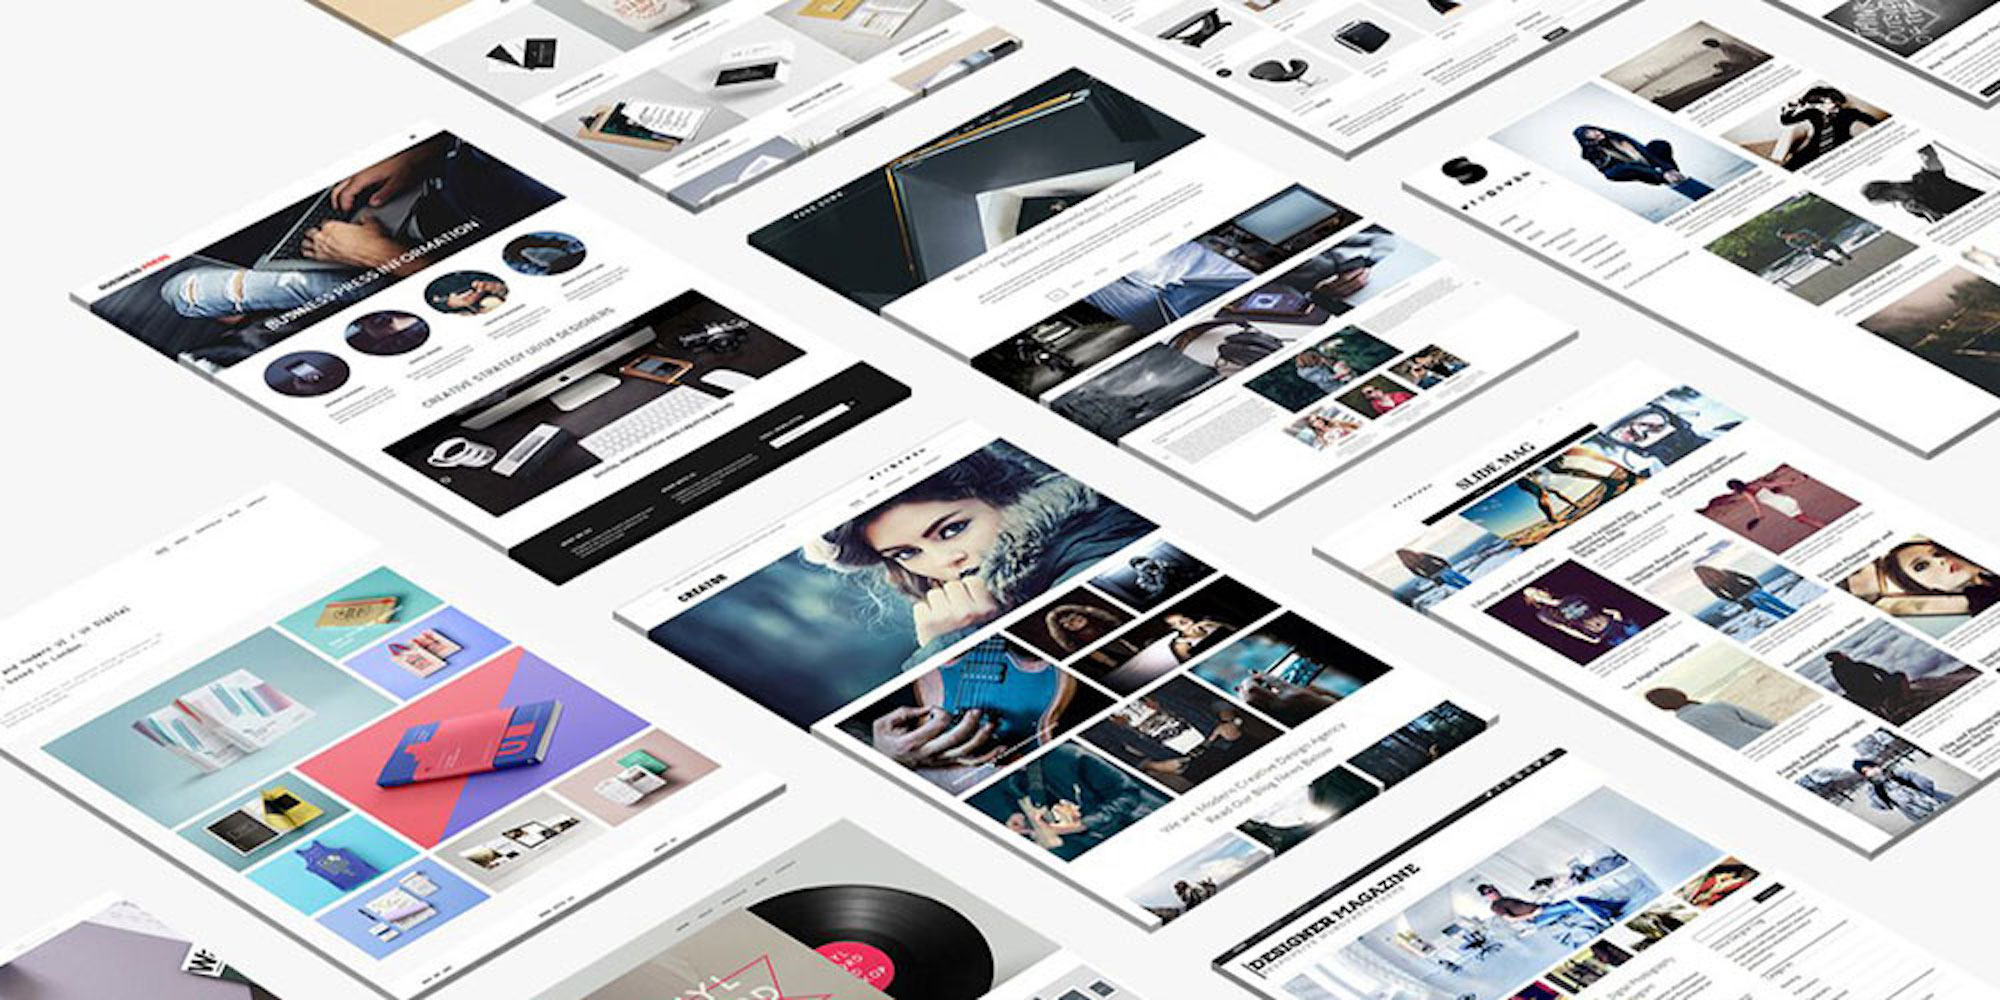 Upgrade your WordPress Site w/ Lifetime Access to this Premium Themes Library: $29